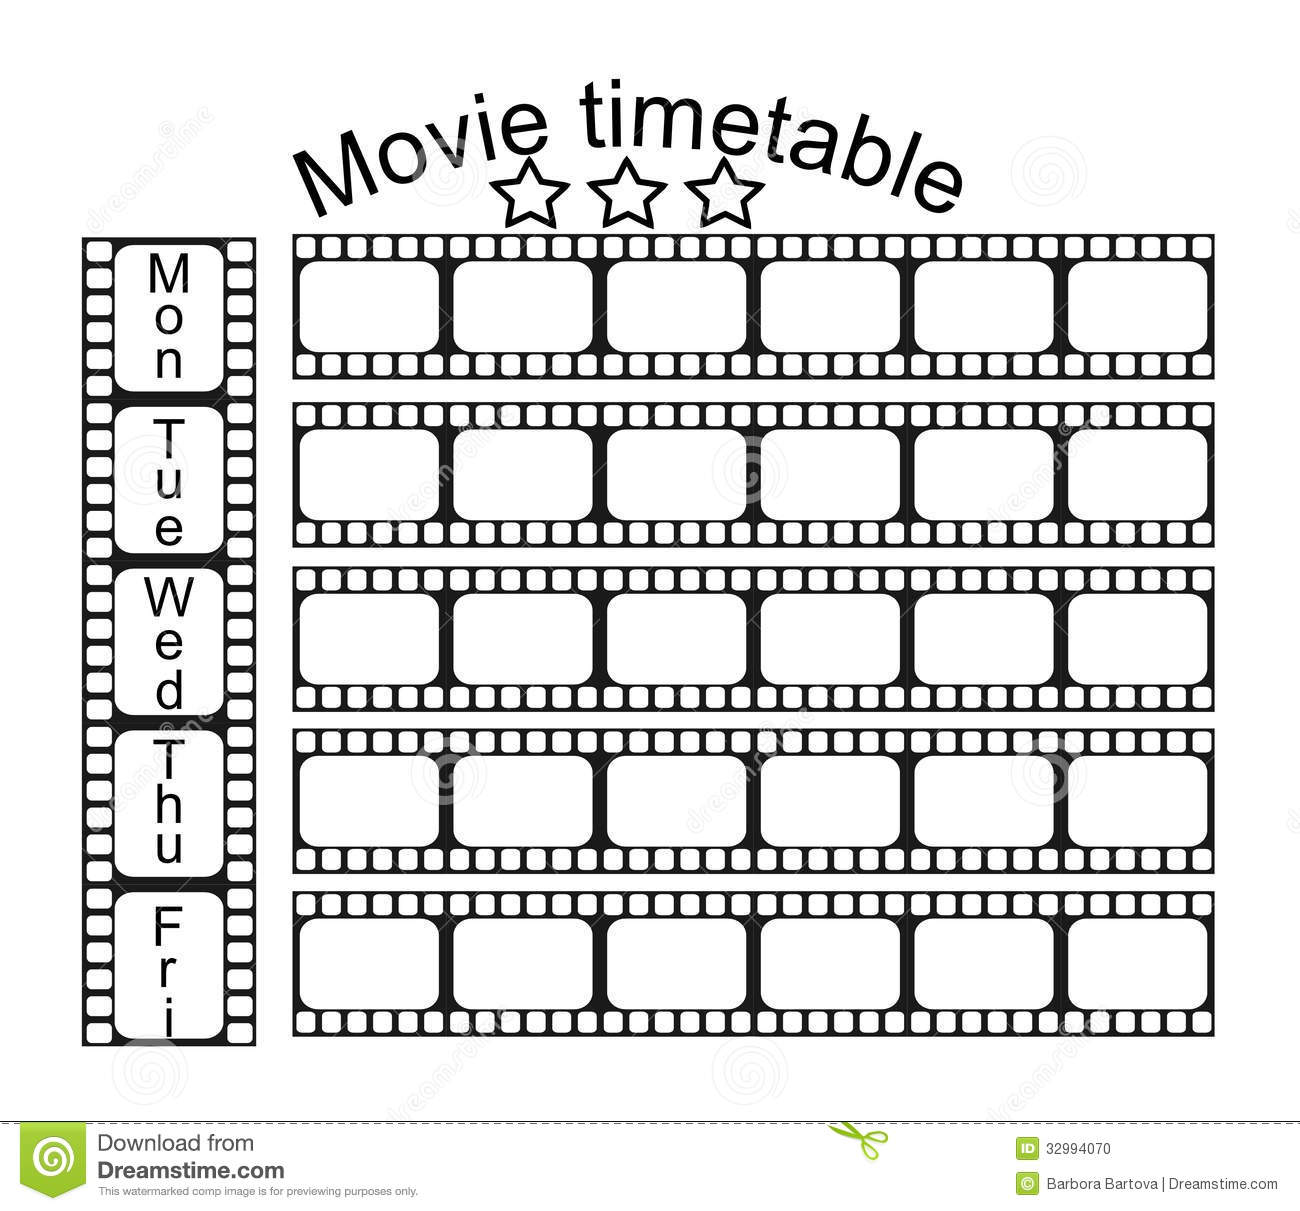 Quotes On School Time Table: Movie School Timetable Stock Vector. Illustration Of Table